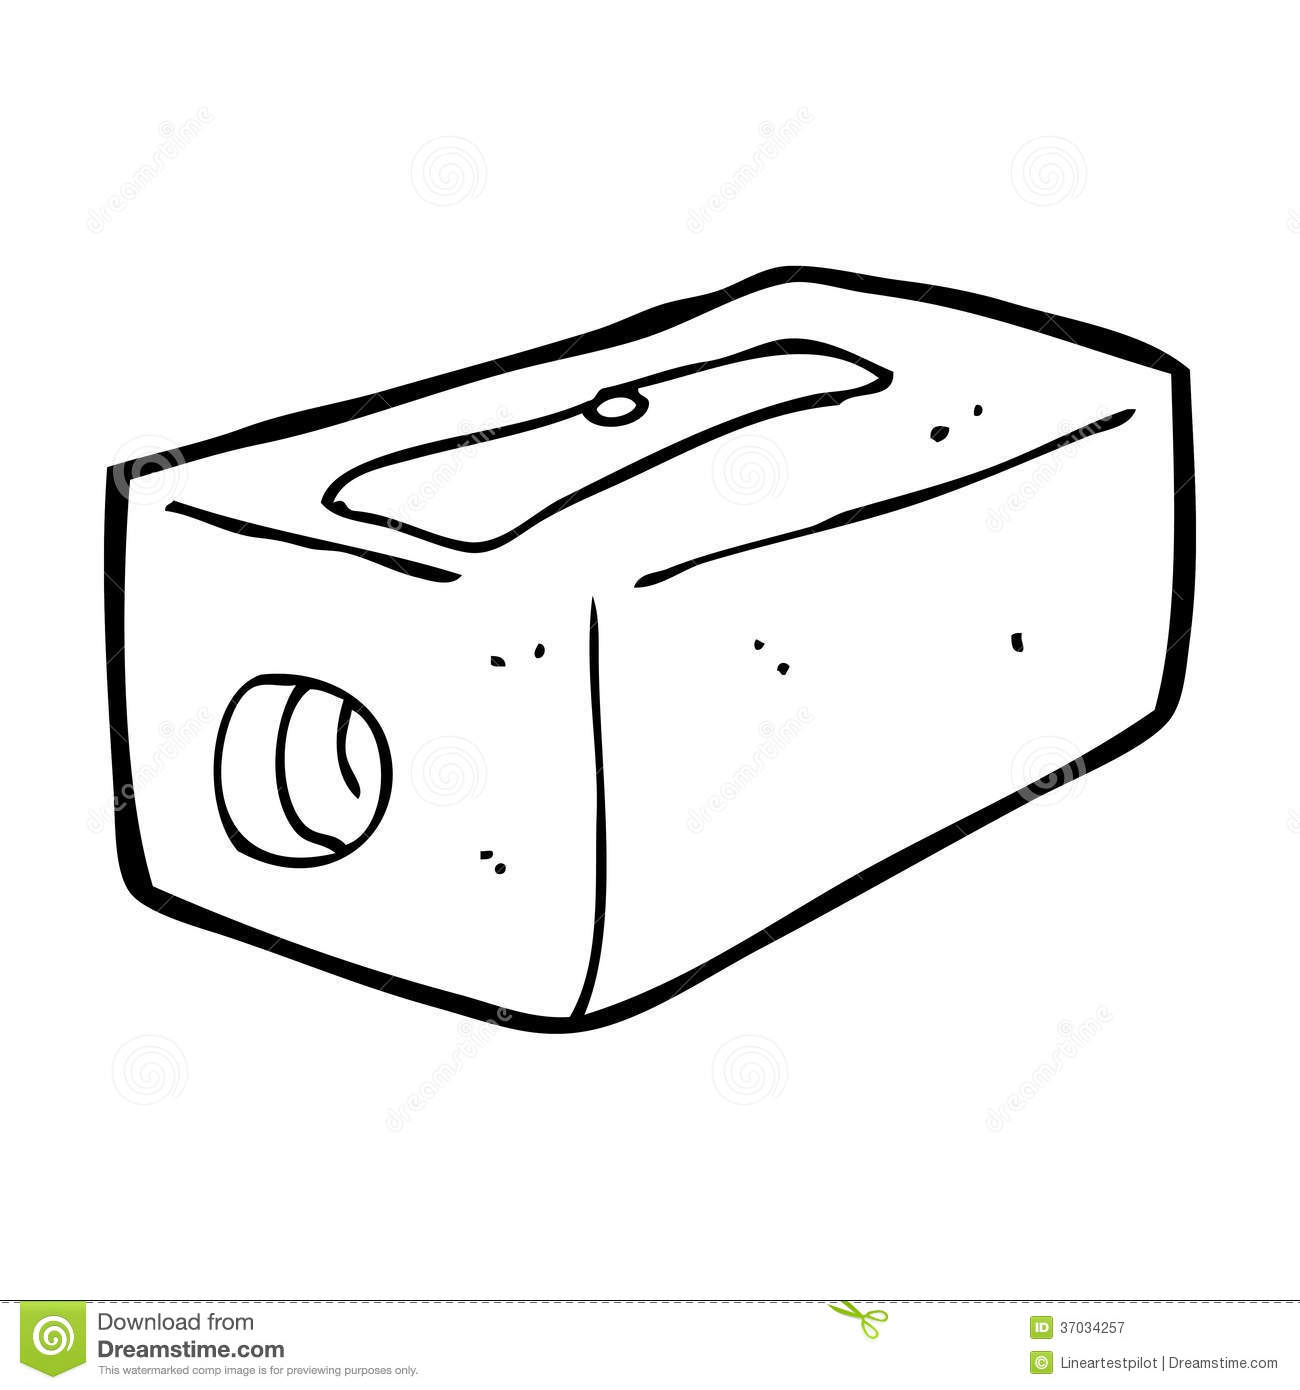 Cute Cartoon Pencil Sharpener Vector Illustration